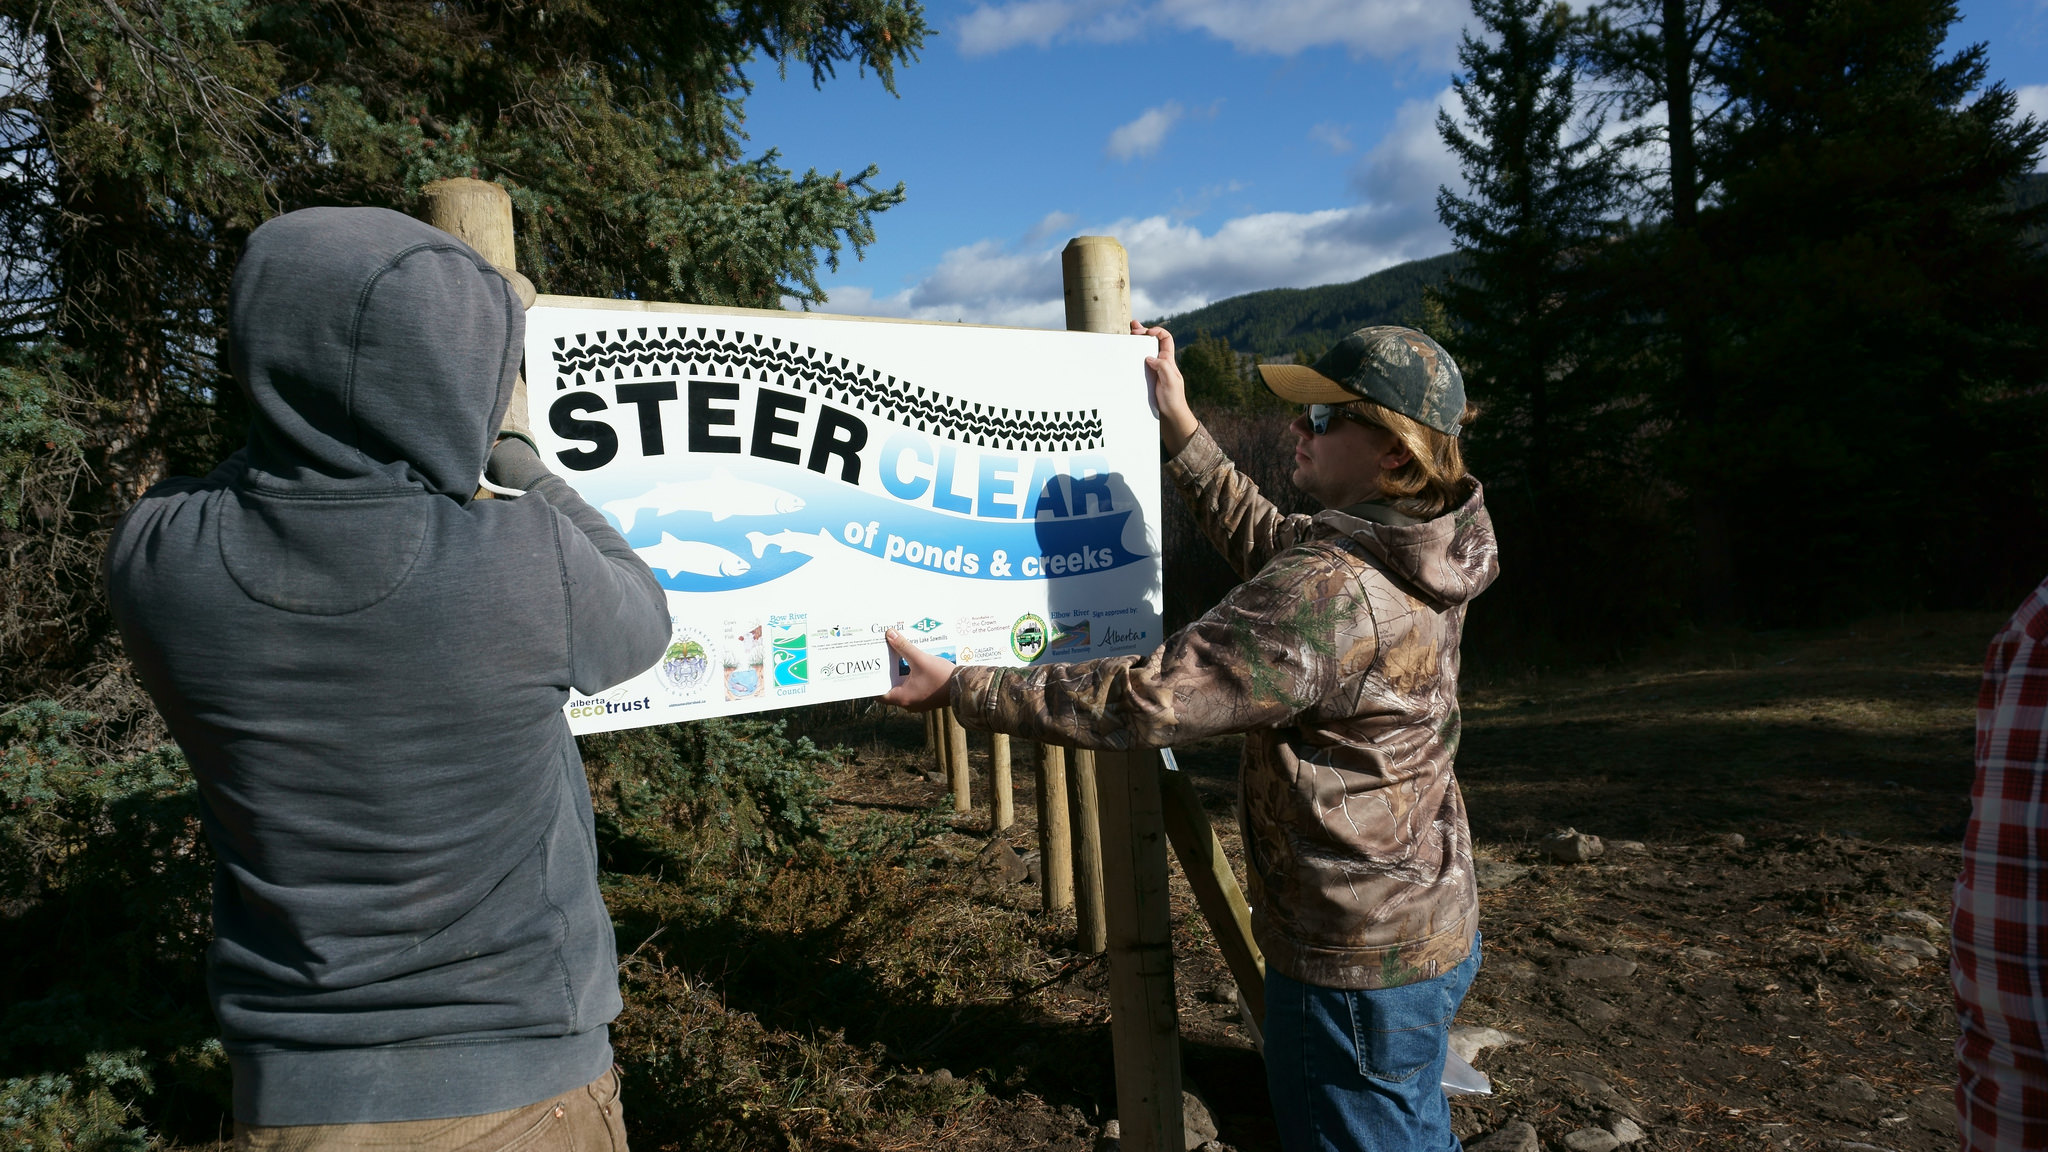 WLP Program Manager Cody Spencer (L) and volunteer Dylan Brassard put up one of 4 signs installed near the site. 2 are 'Steer Clear' signs and 2 explain the restoration activities.